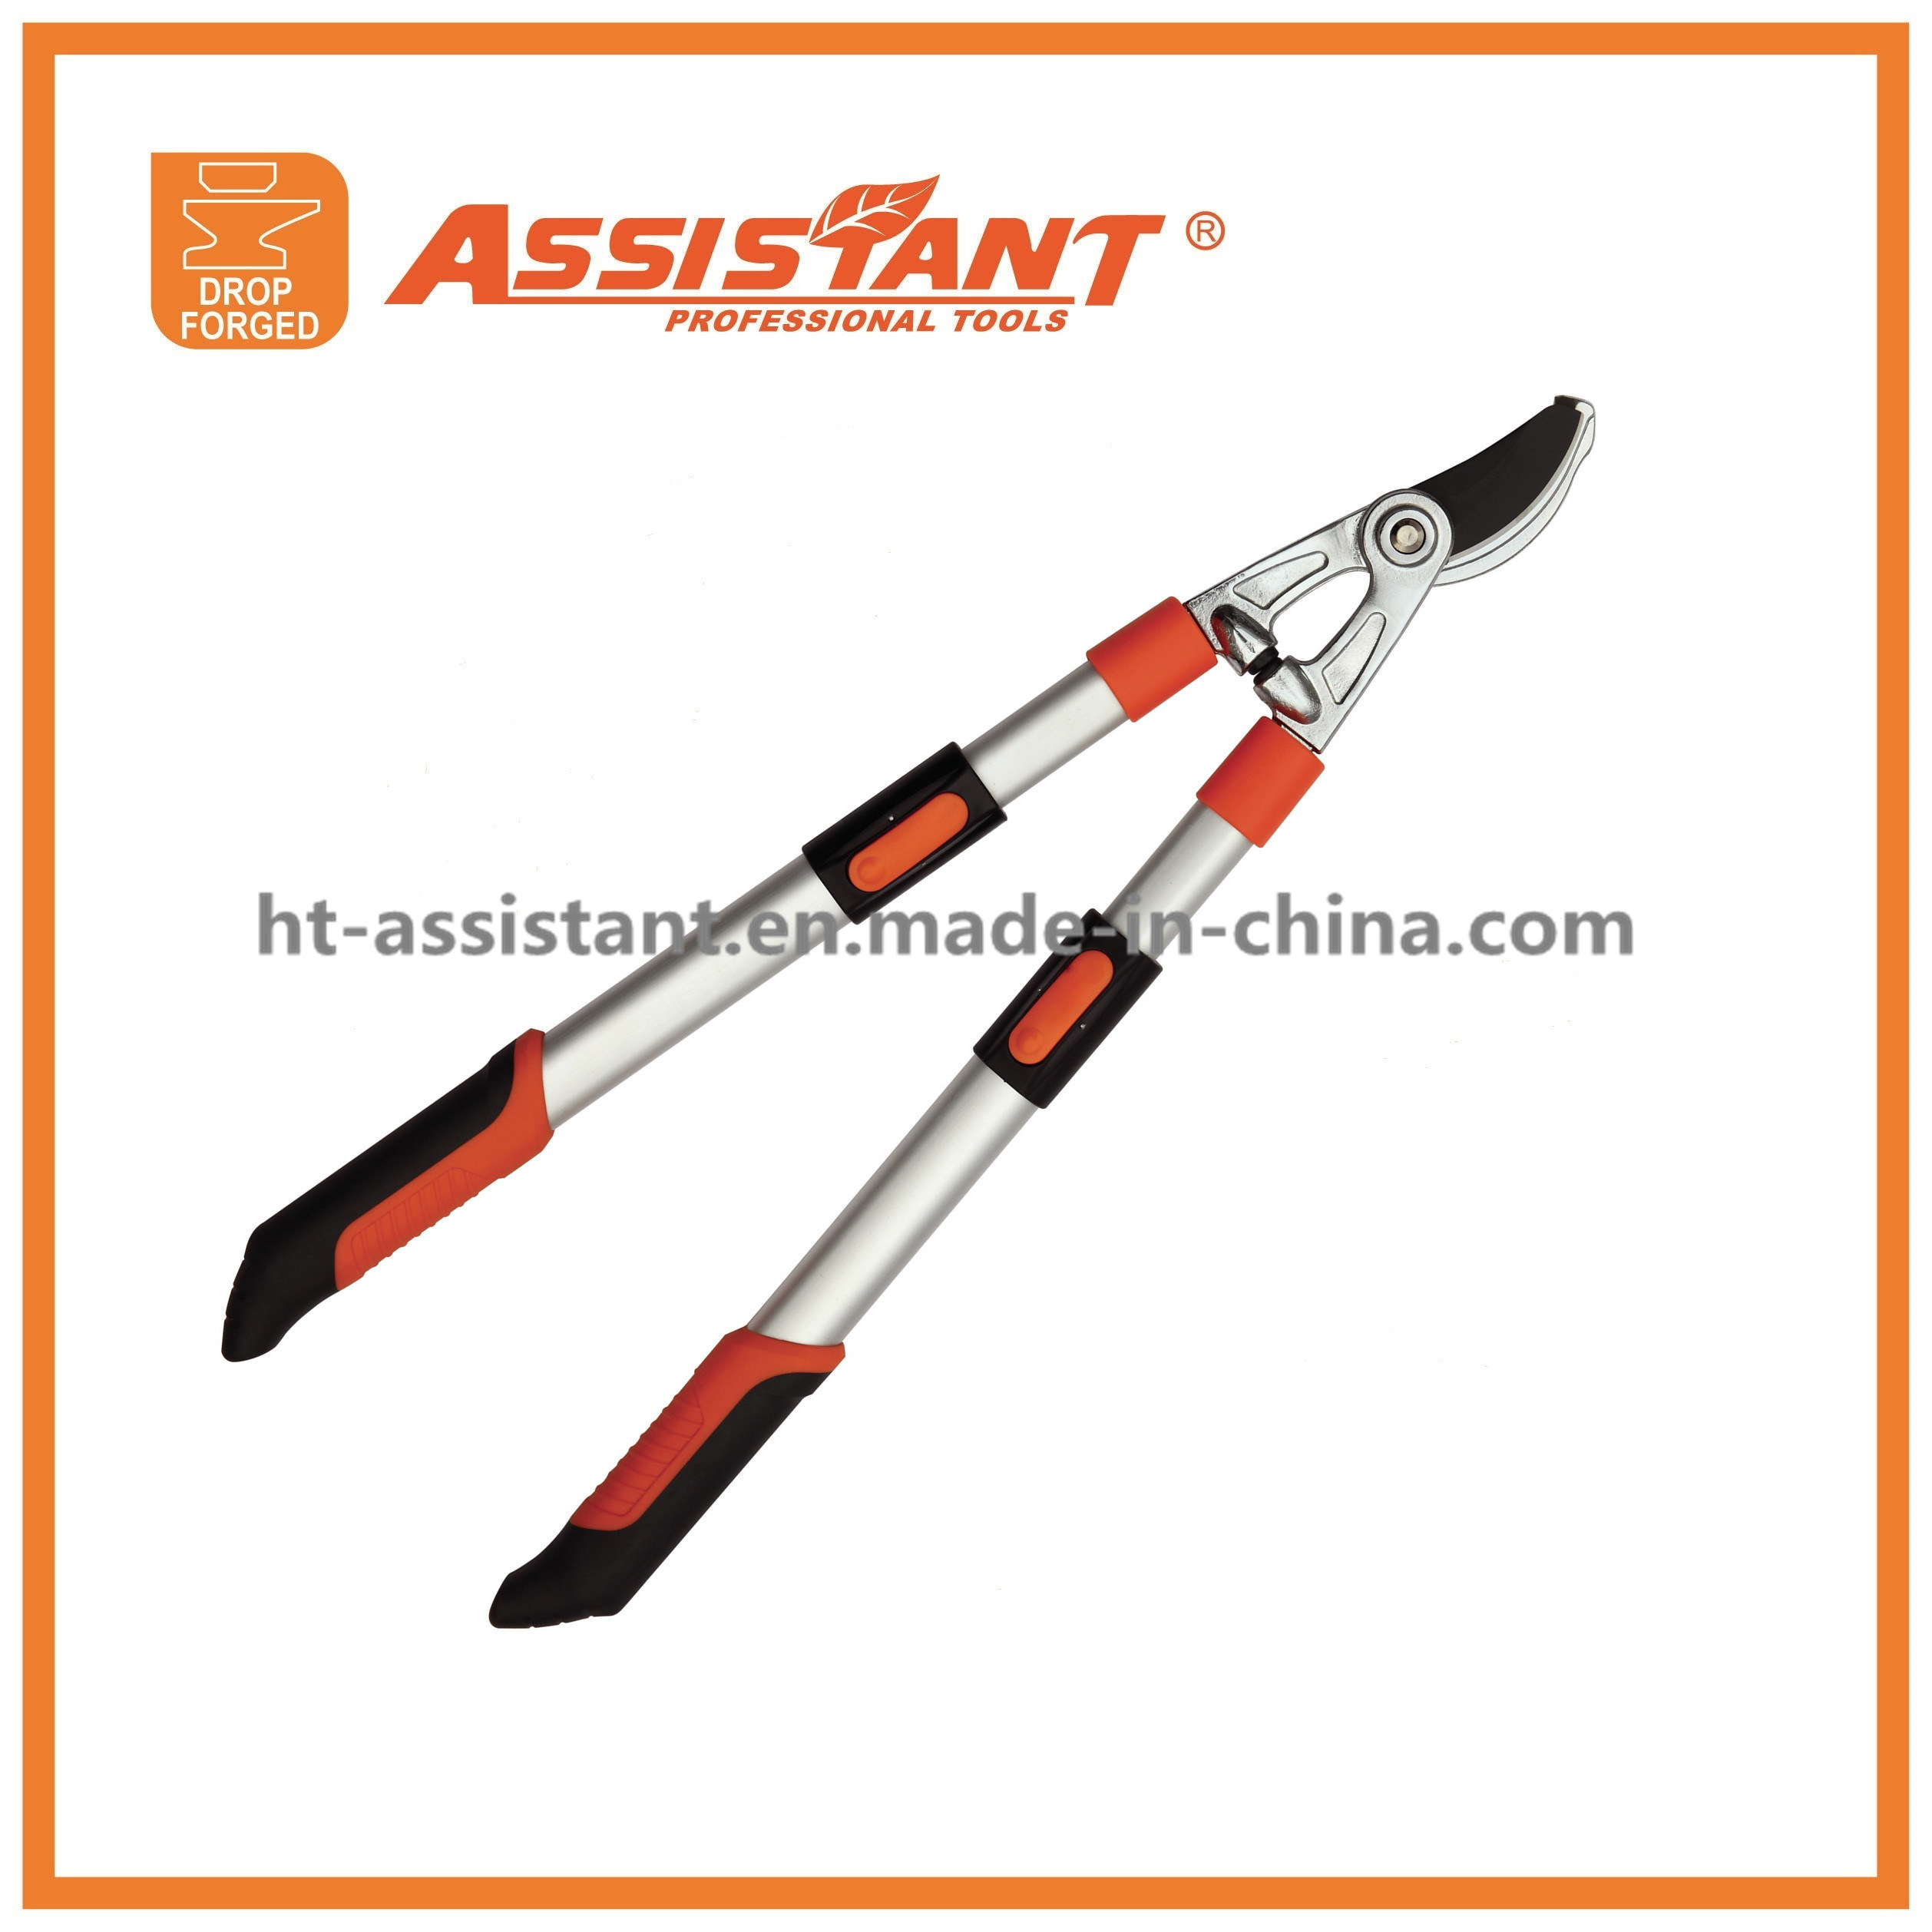 Telescopic Extendable Aluminum Handle Pruning Shears Drop Forged Bypass Lopper